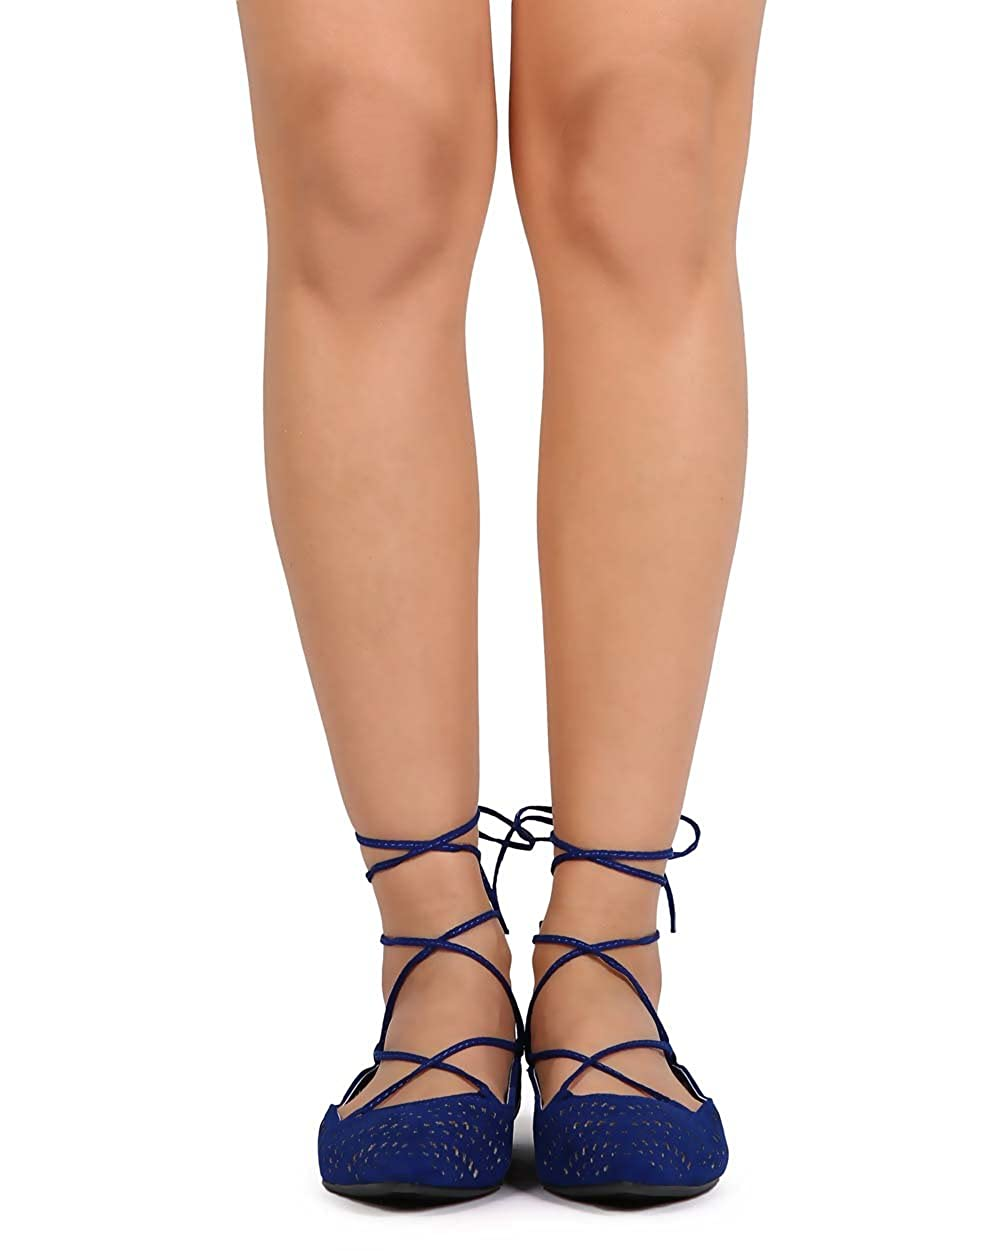 Qupid Women Suede Pointy Toe Hollow Out Gilly Tie Wrap Flat EB03 - Royal Blue B01C4CJFV6 7.5 M US